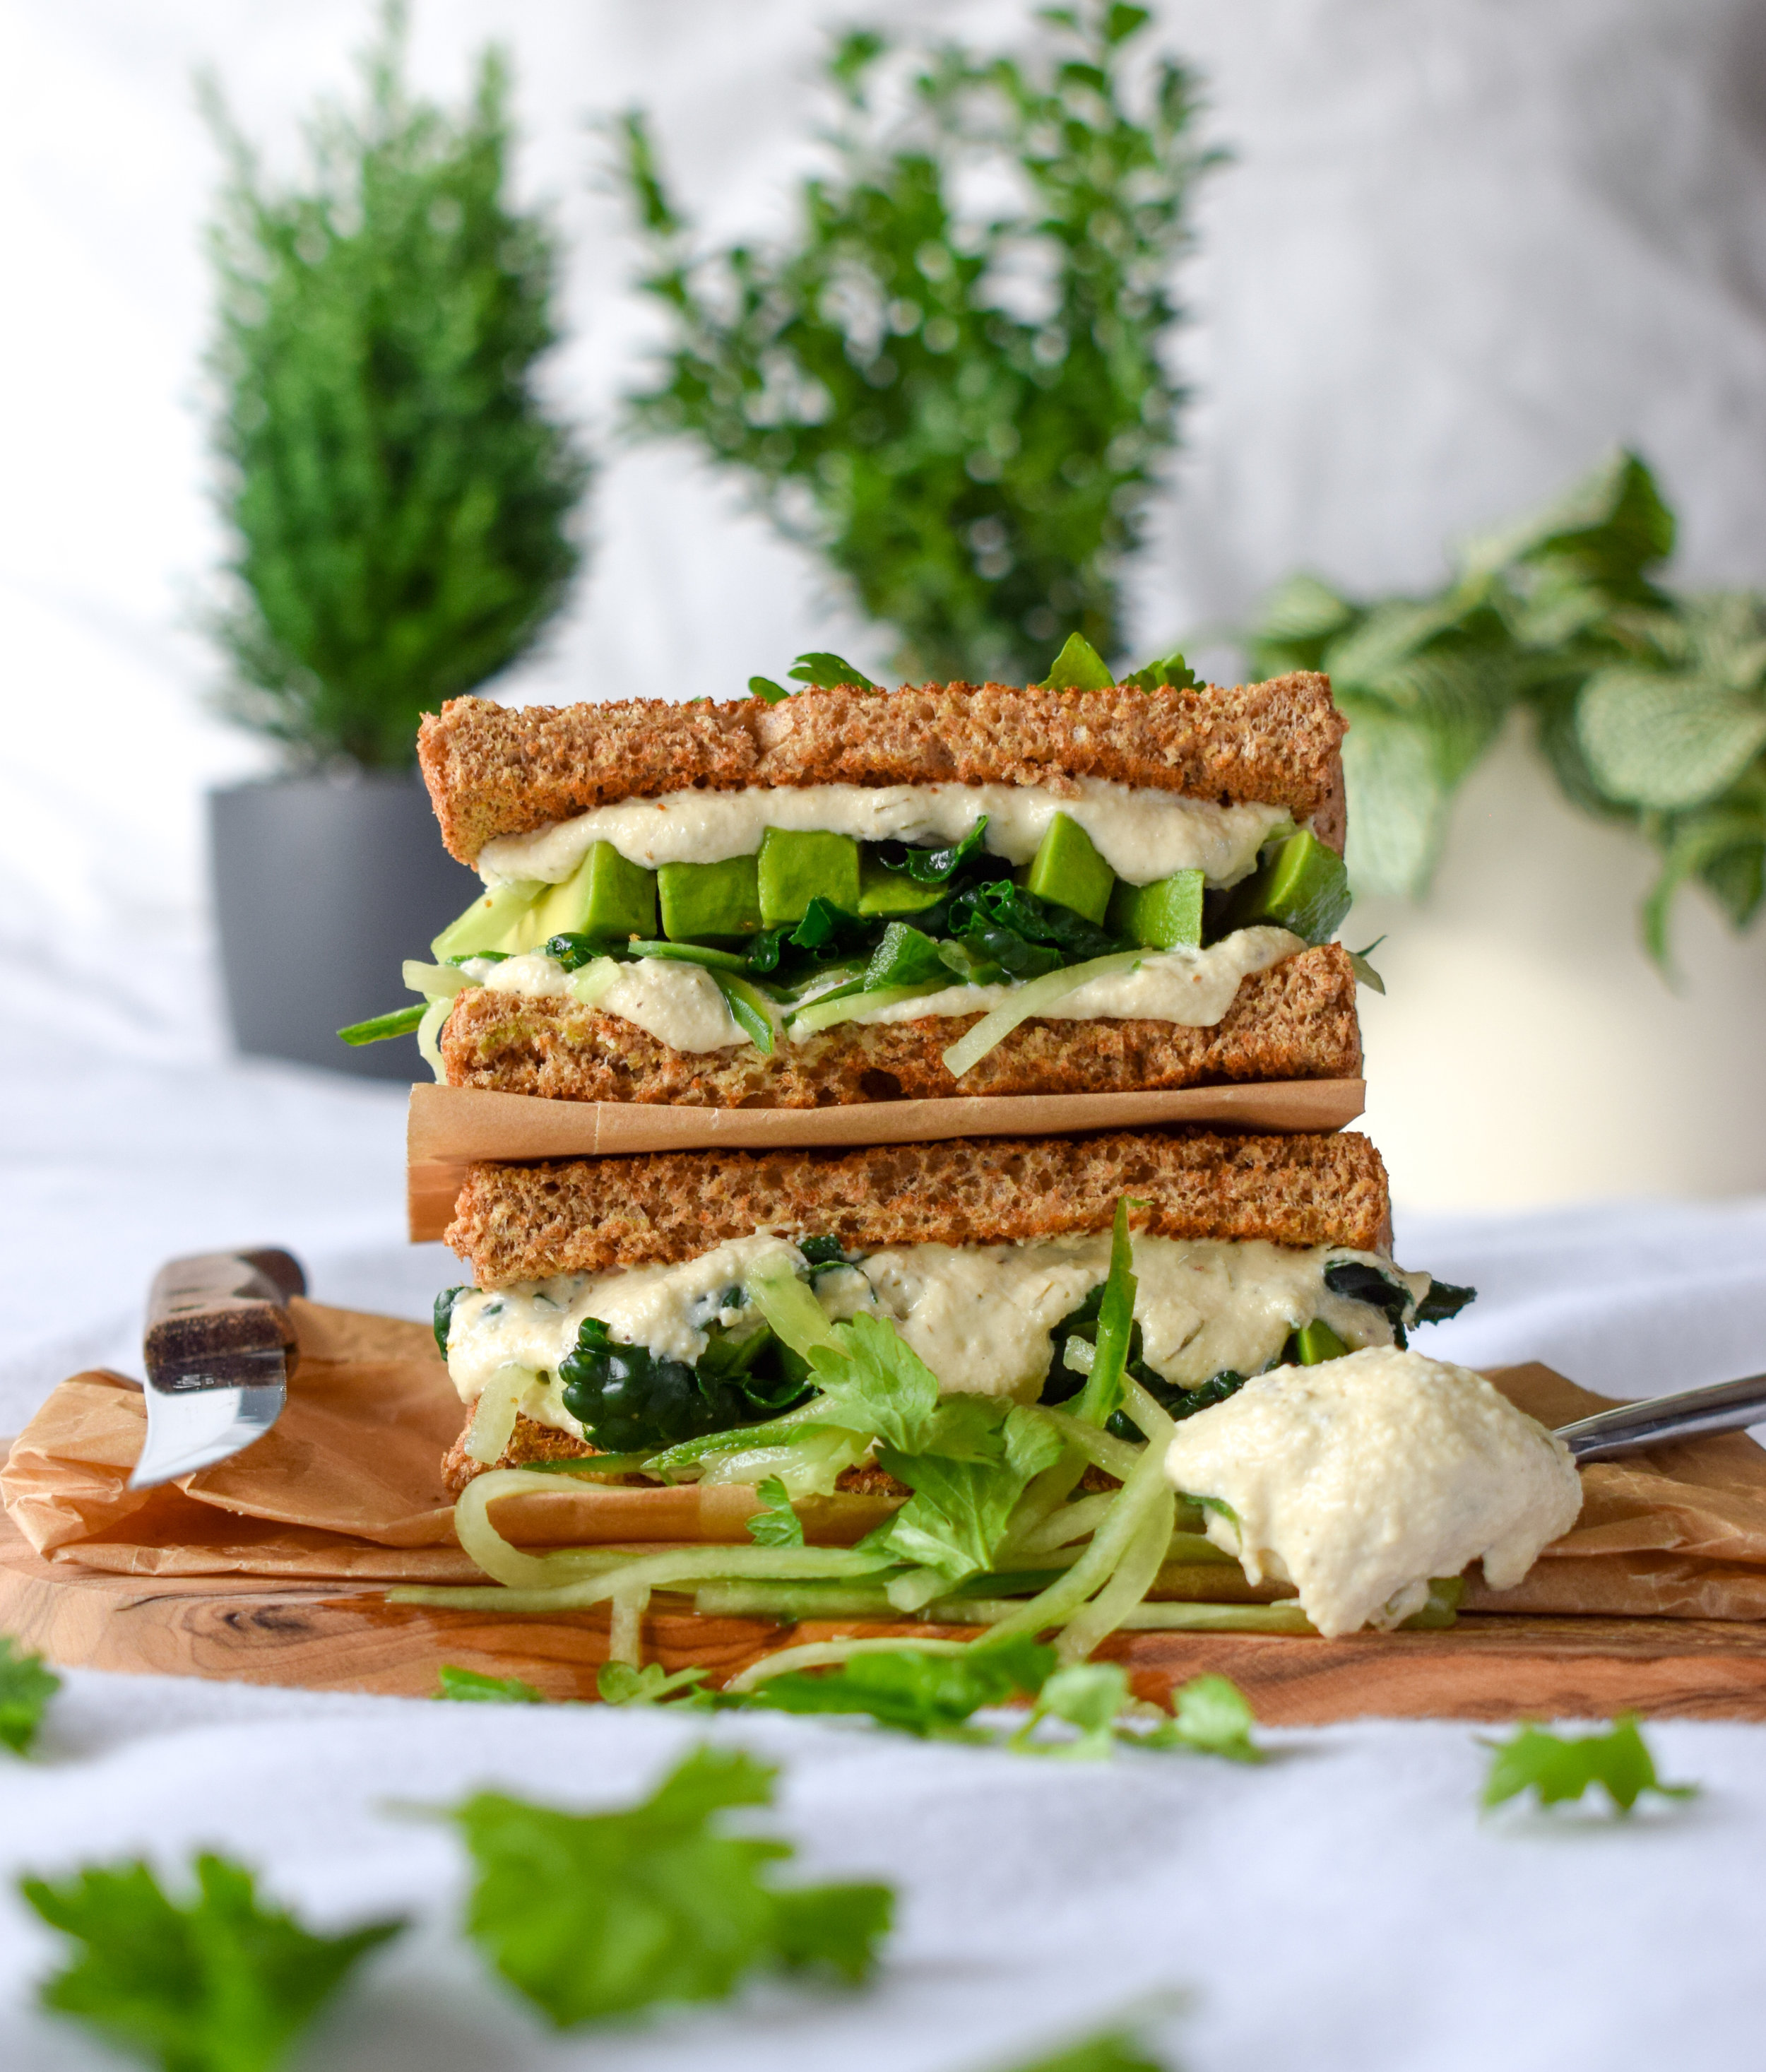 Loaded Vegan Cream Cheese Toasted Sandwich with Cucumber, Kale and Avocado - Ally The Earthling